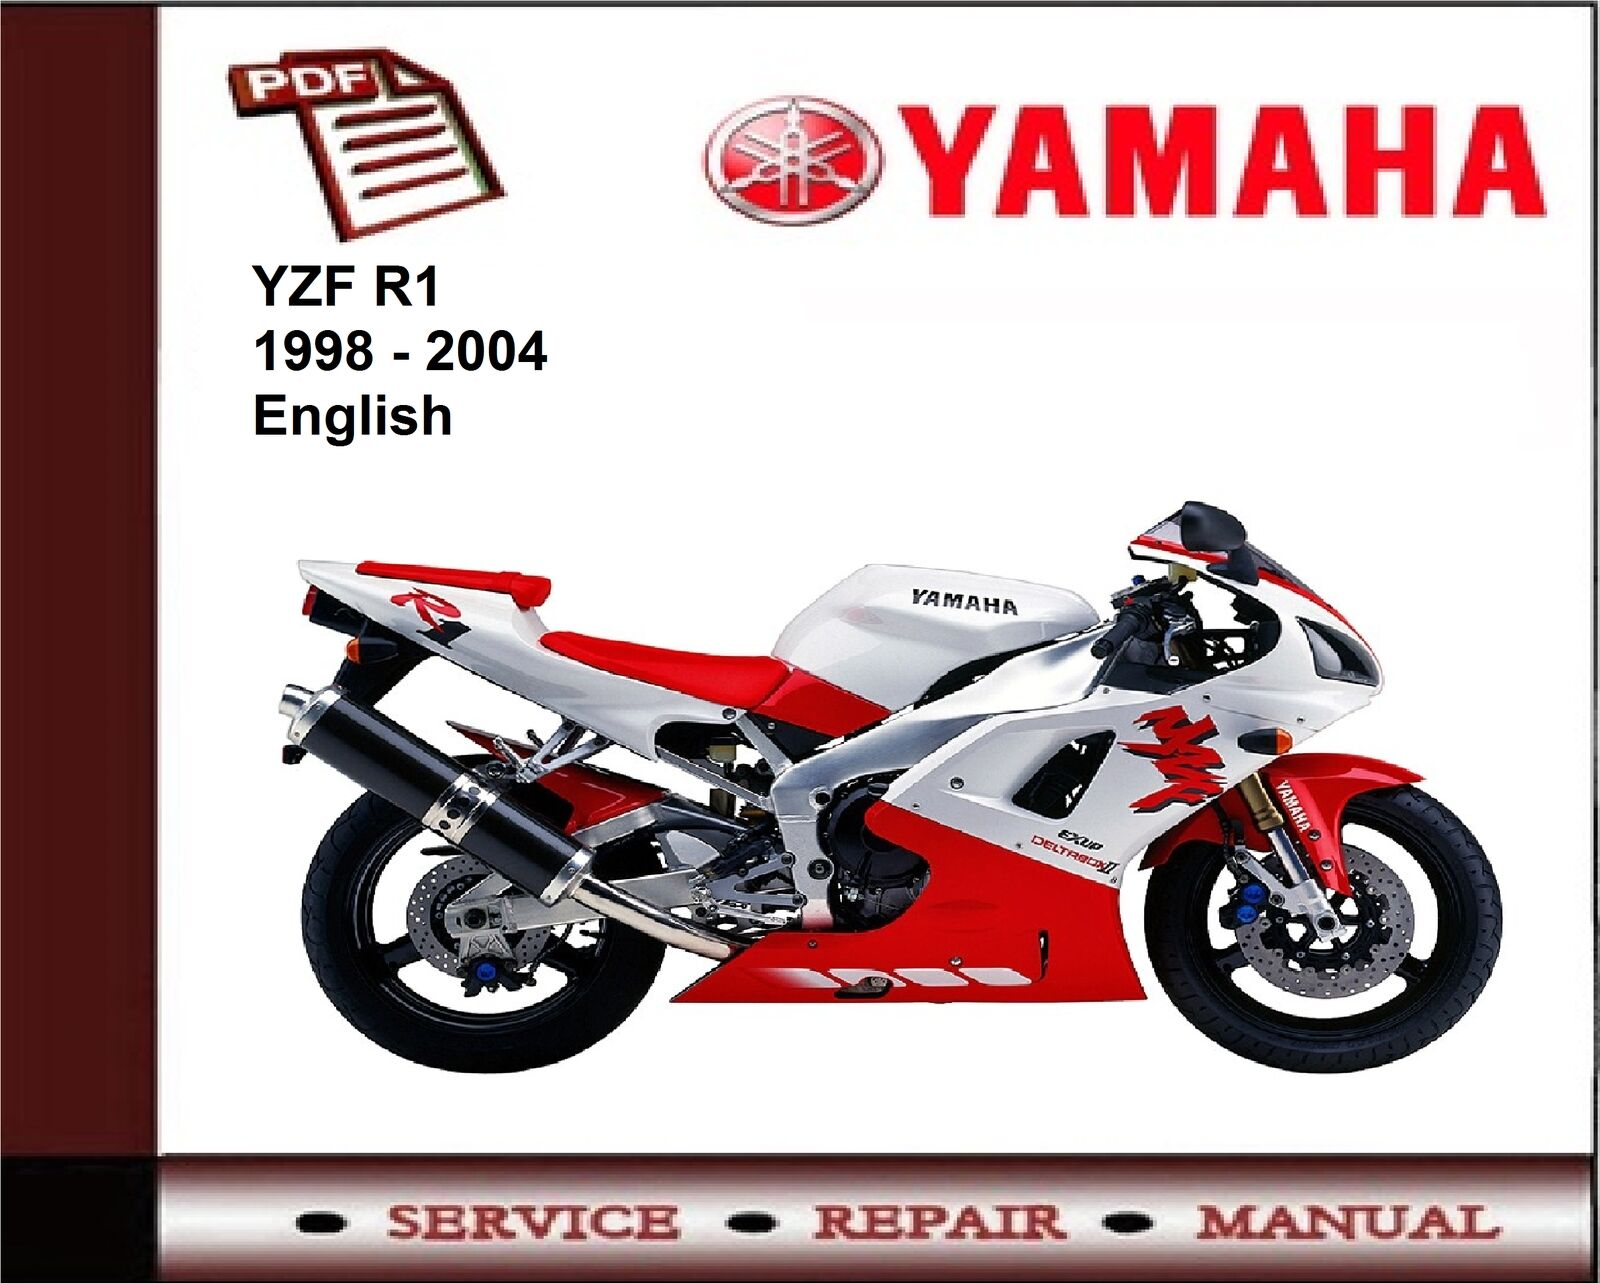 yamaha yzf r1 yzfr1 1998 2004 workshop service repair manual rh picclick co  uk yamaha r1 5jj owners manual yamaha r1 5jj workshop manual